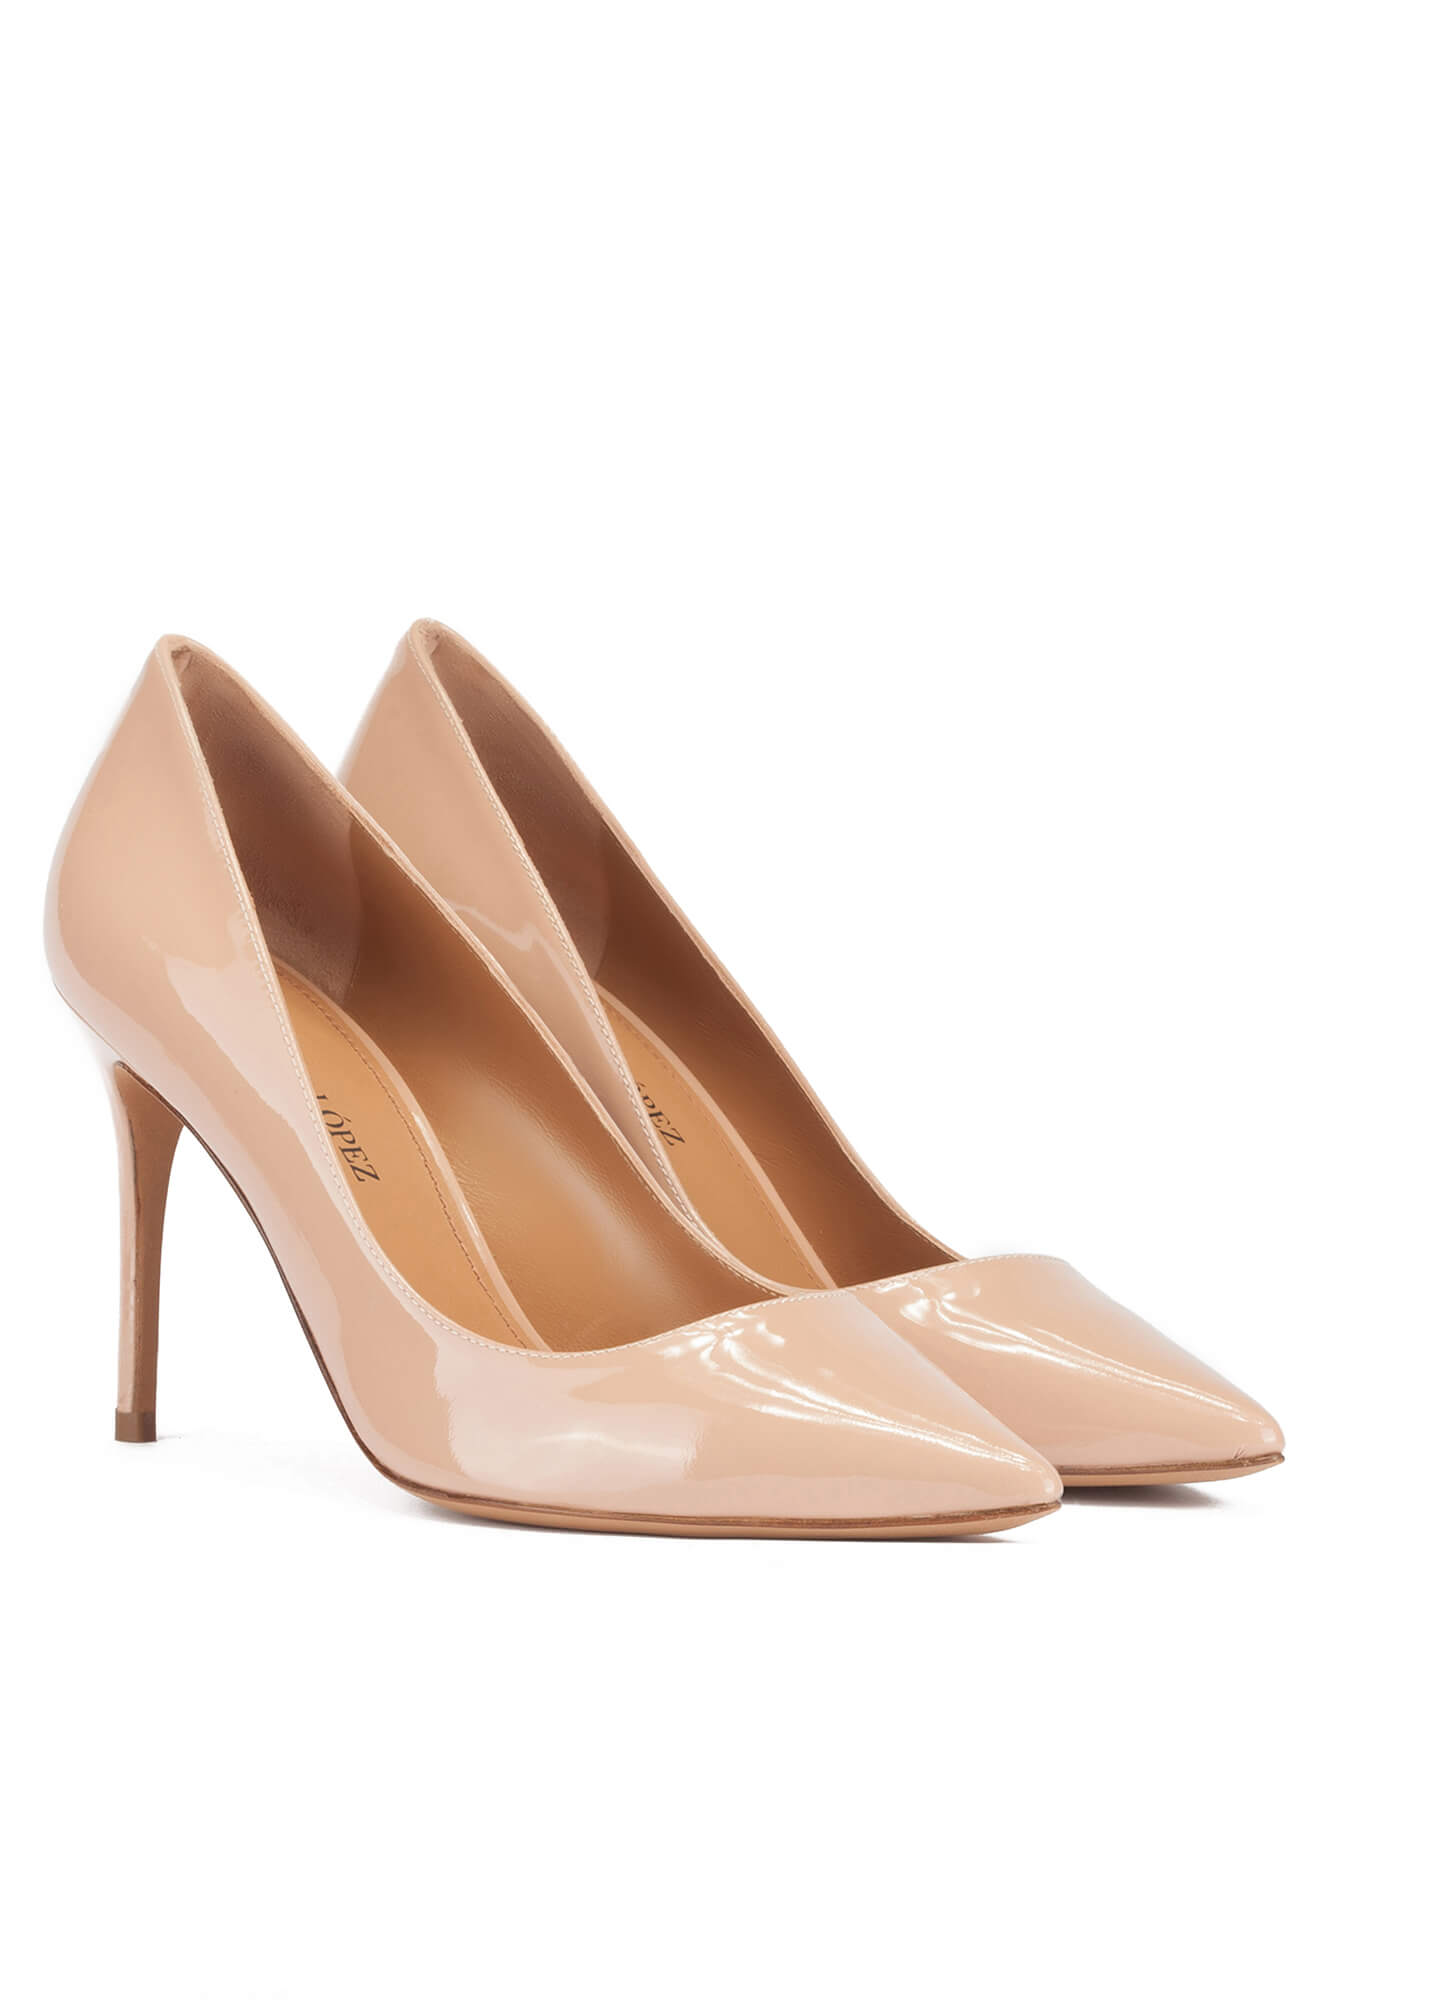 Pointy toe high heel pumps in nude